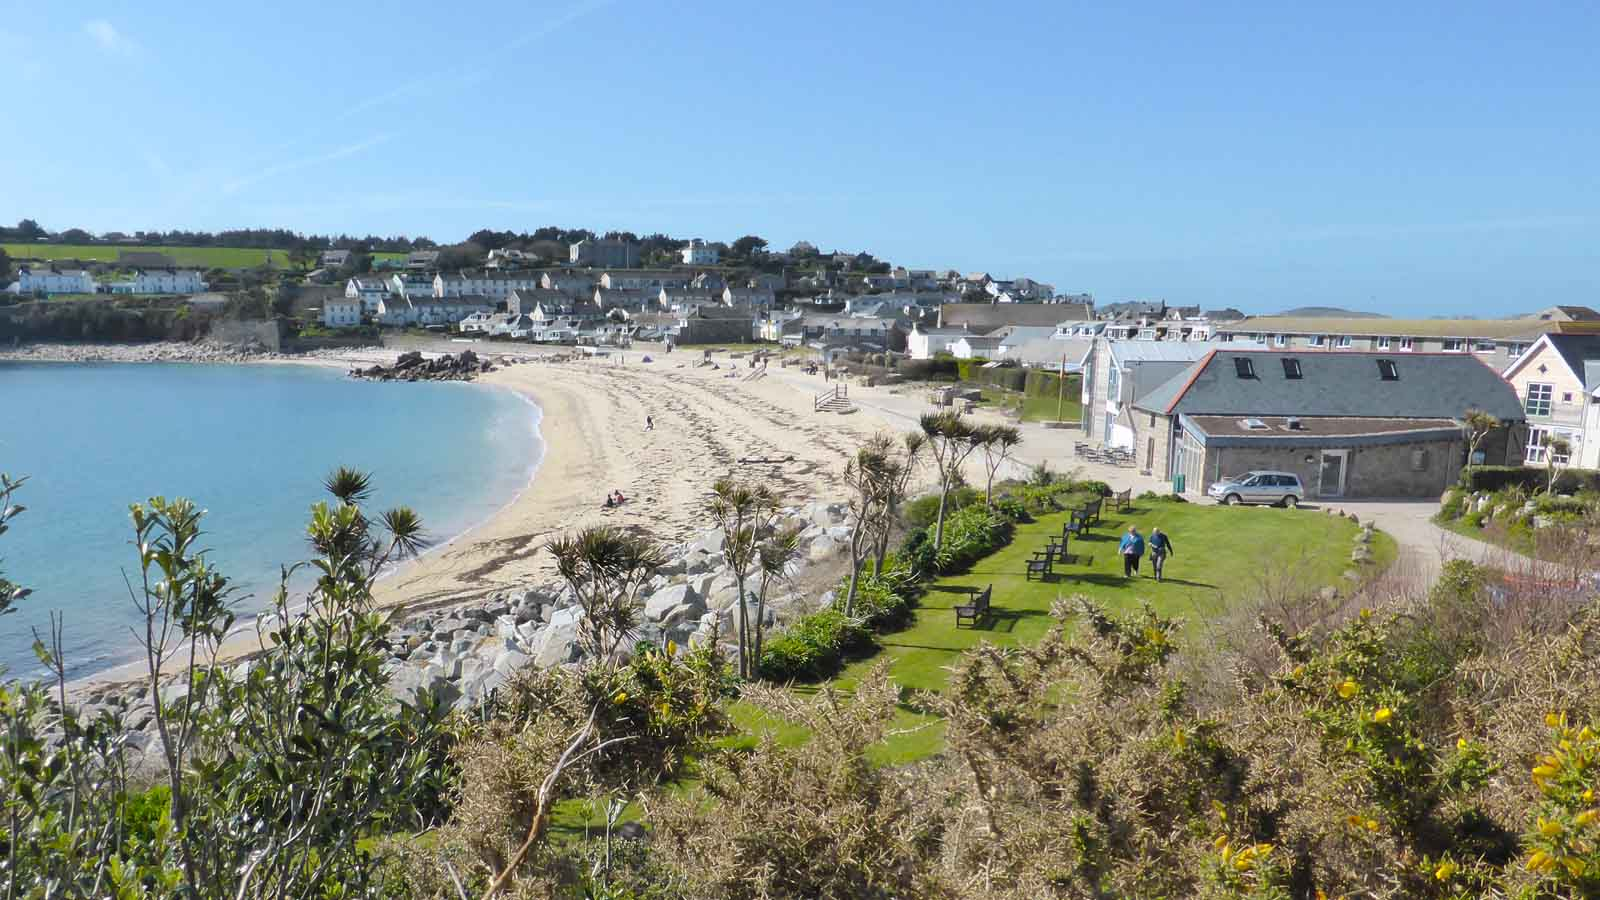 Superfast Broadband Cable Laying Starts In Scilly